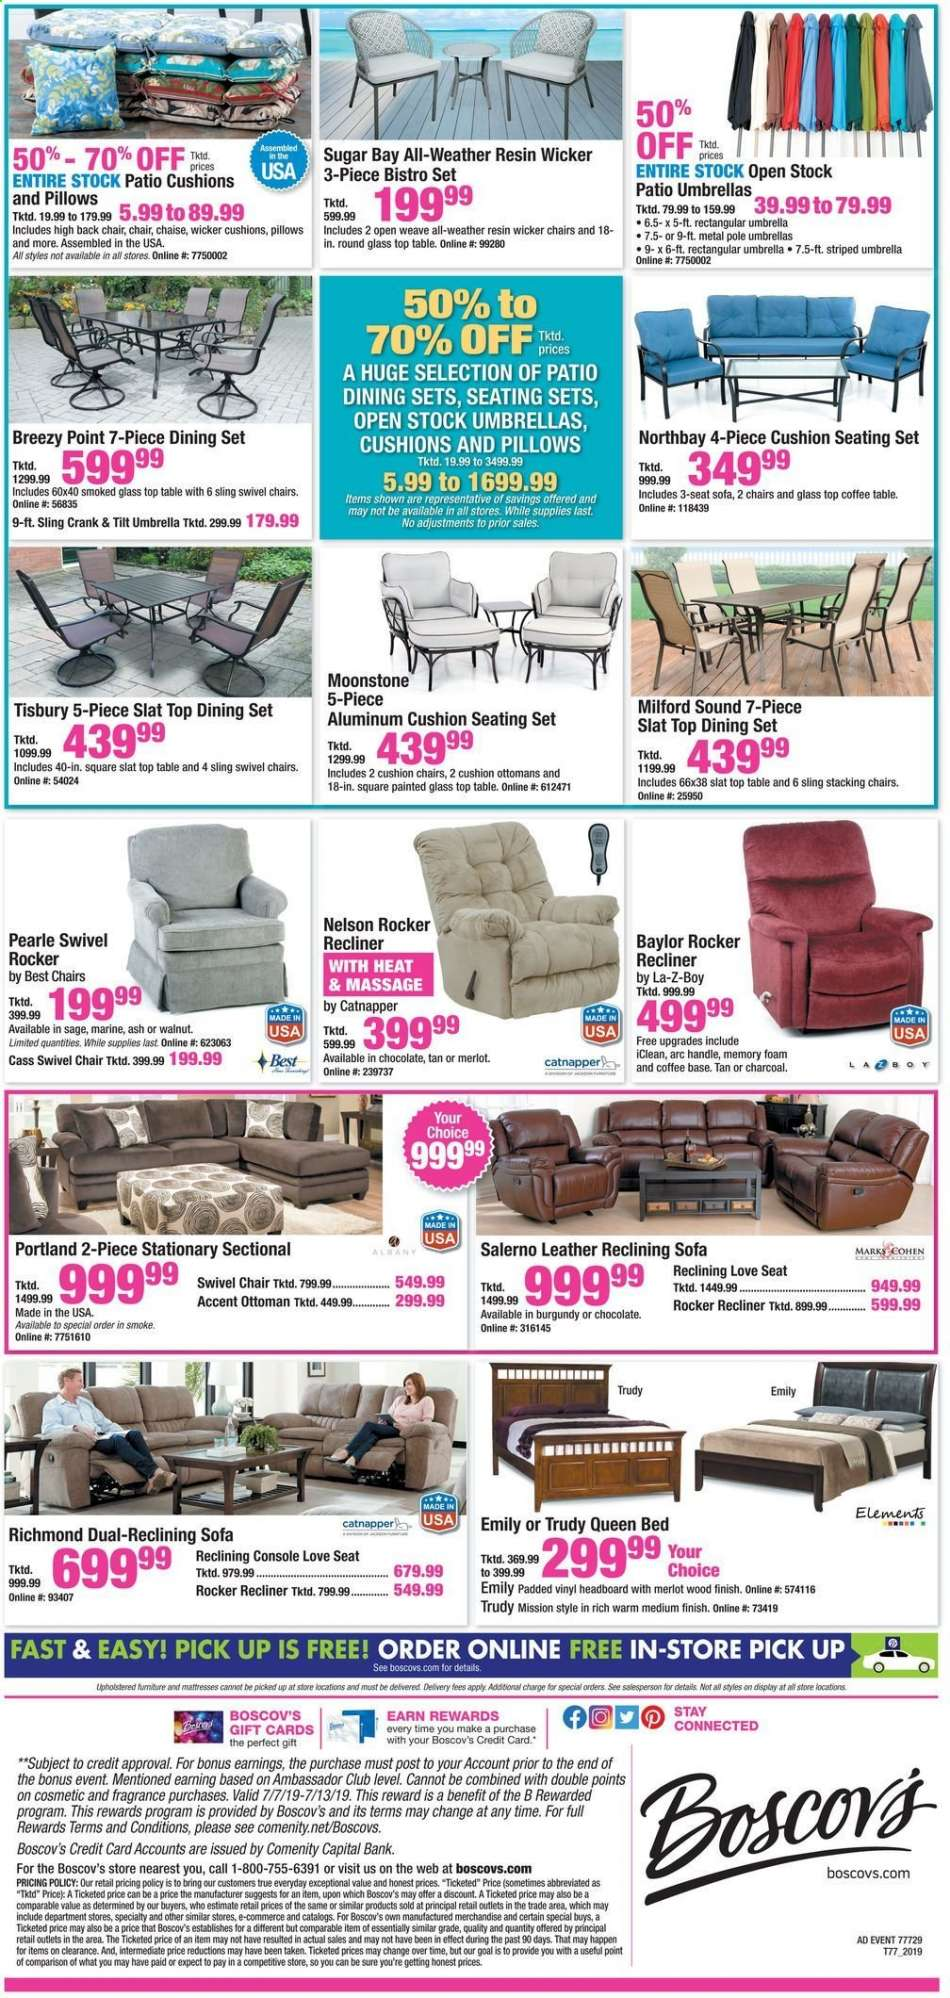 Surprising Boscovs Flyer 07 05 2019 07 14 2019 Weekly Ads Us Gmtry Best Dining Table And Chair Ideas Images Gmtryco